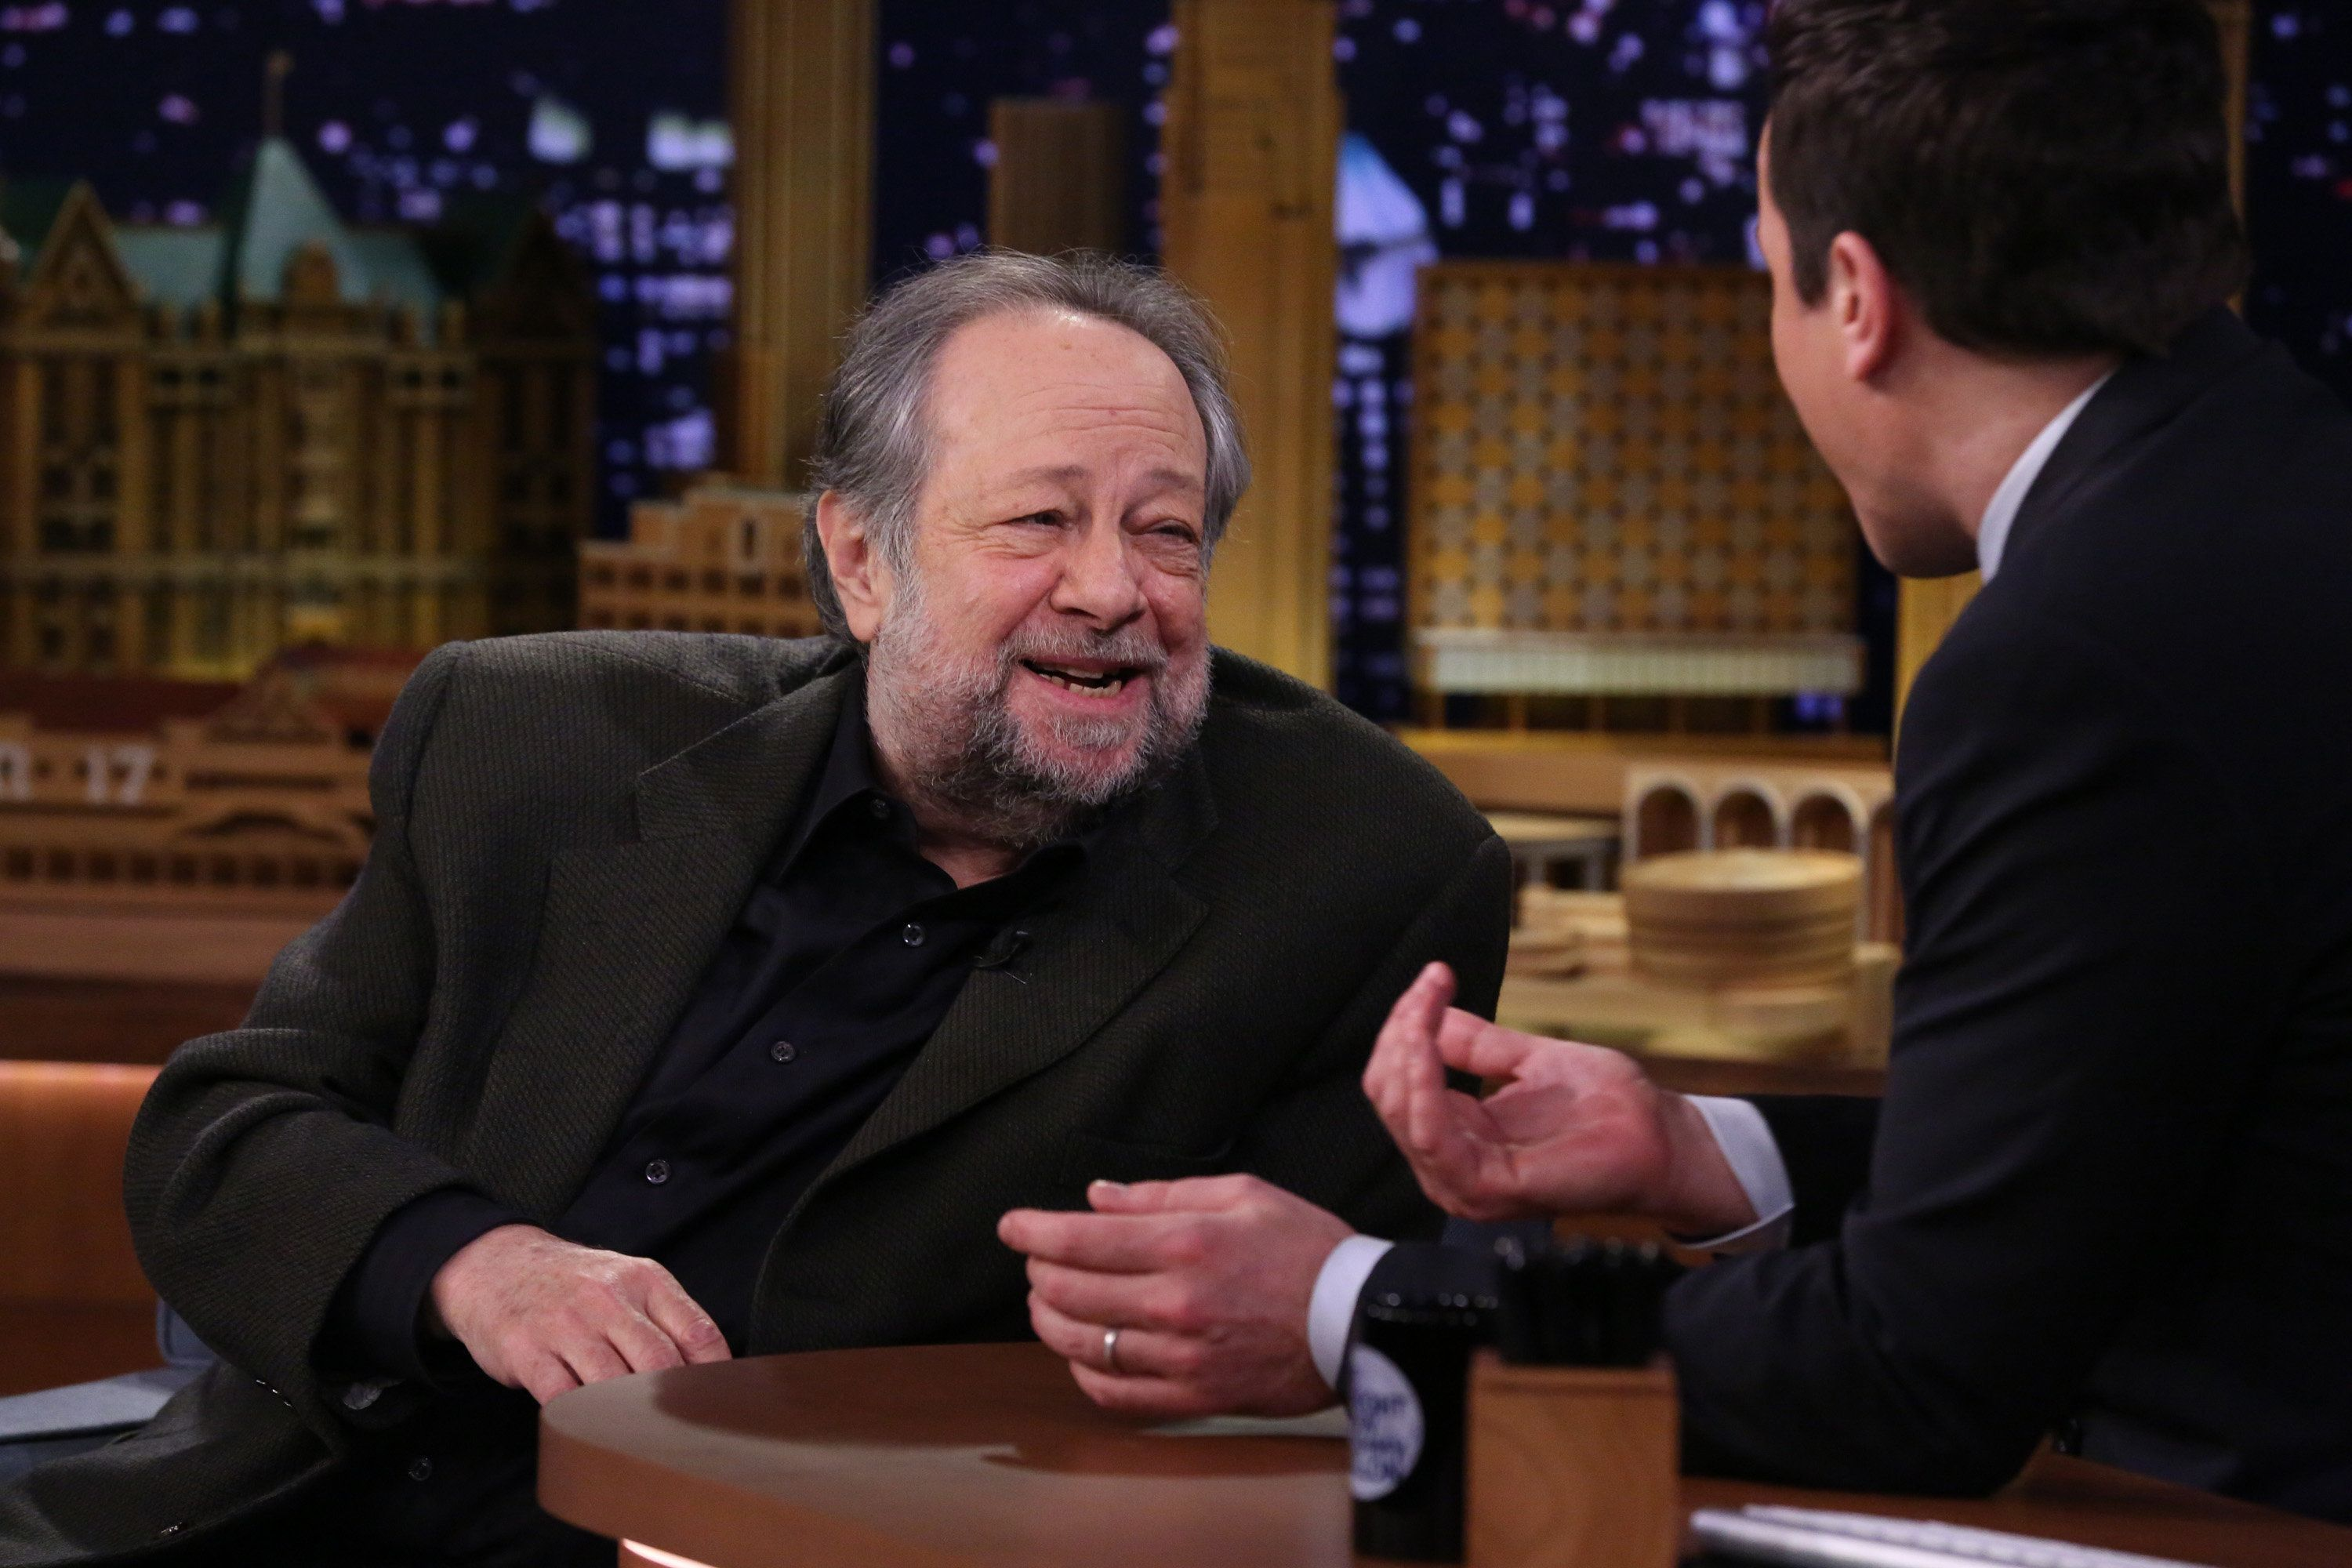 Legendary magician Ricky Jay chats with late-night host Jimmy Fallon on March 31,